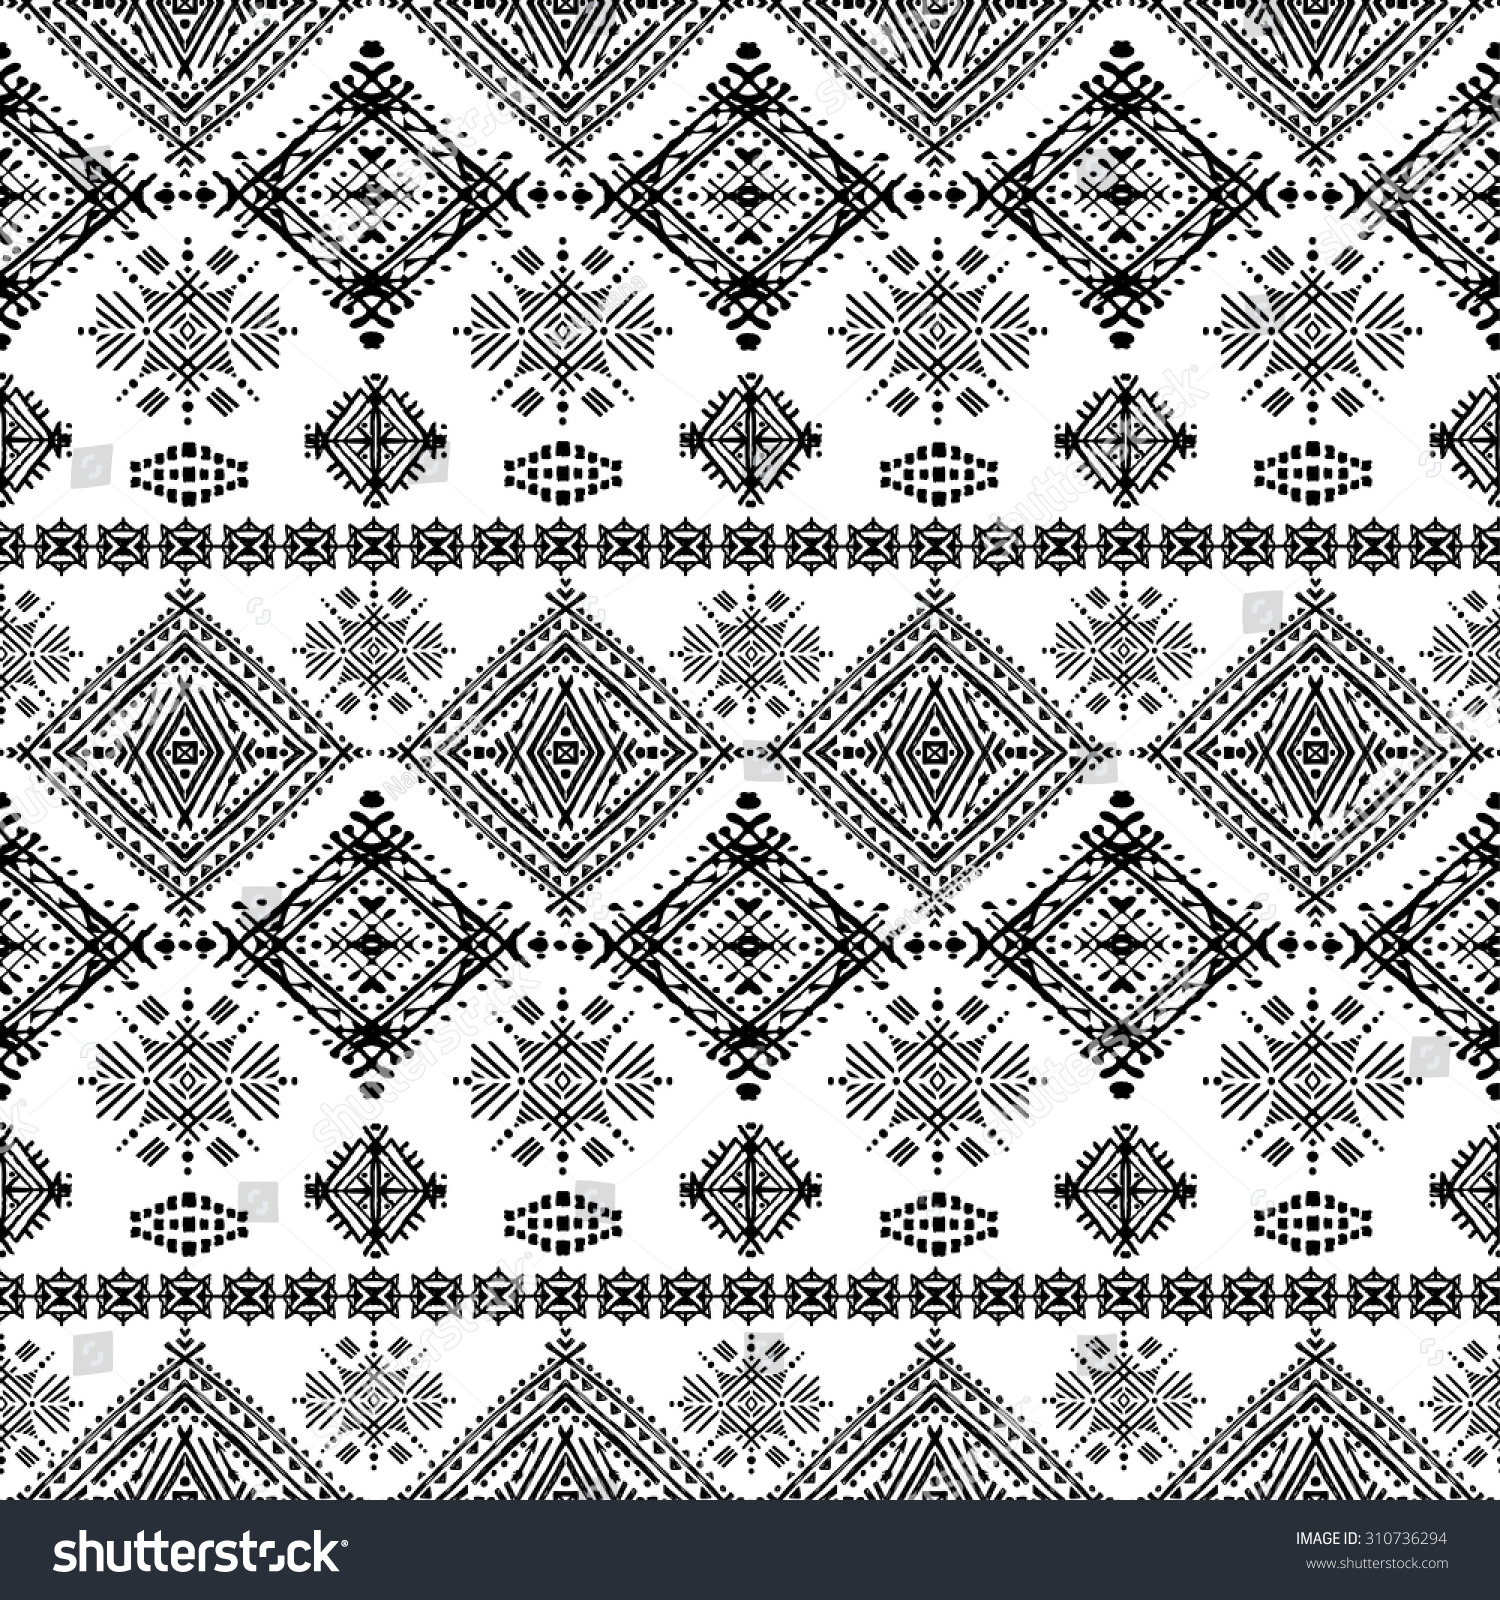 Ethno seamless ornament Ethnic boho repeatable pattern Tribal art background Fabric design wallpaper wrapping